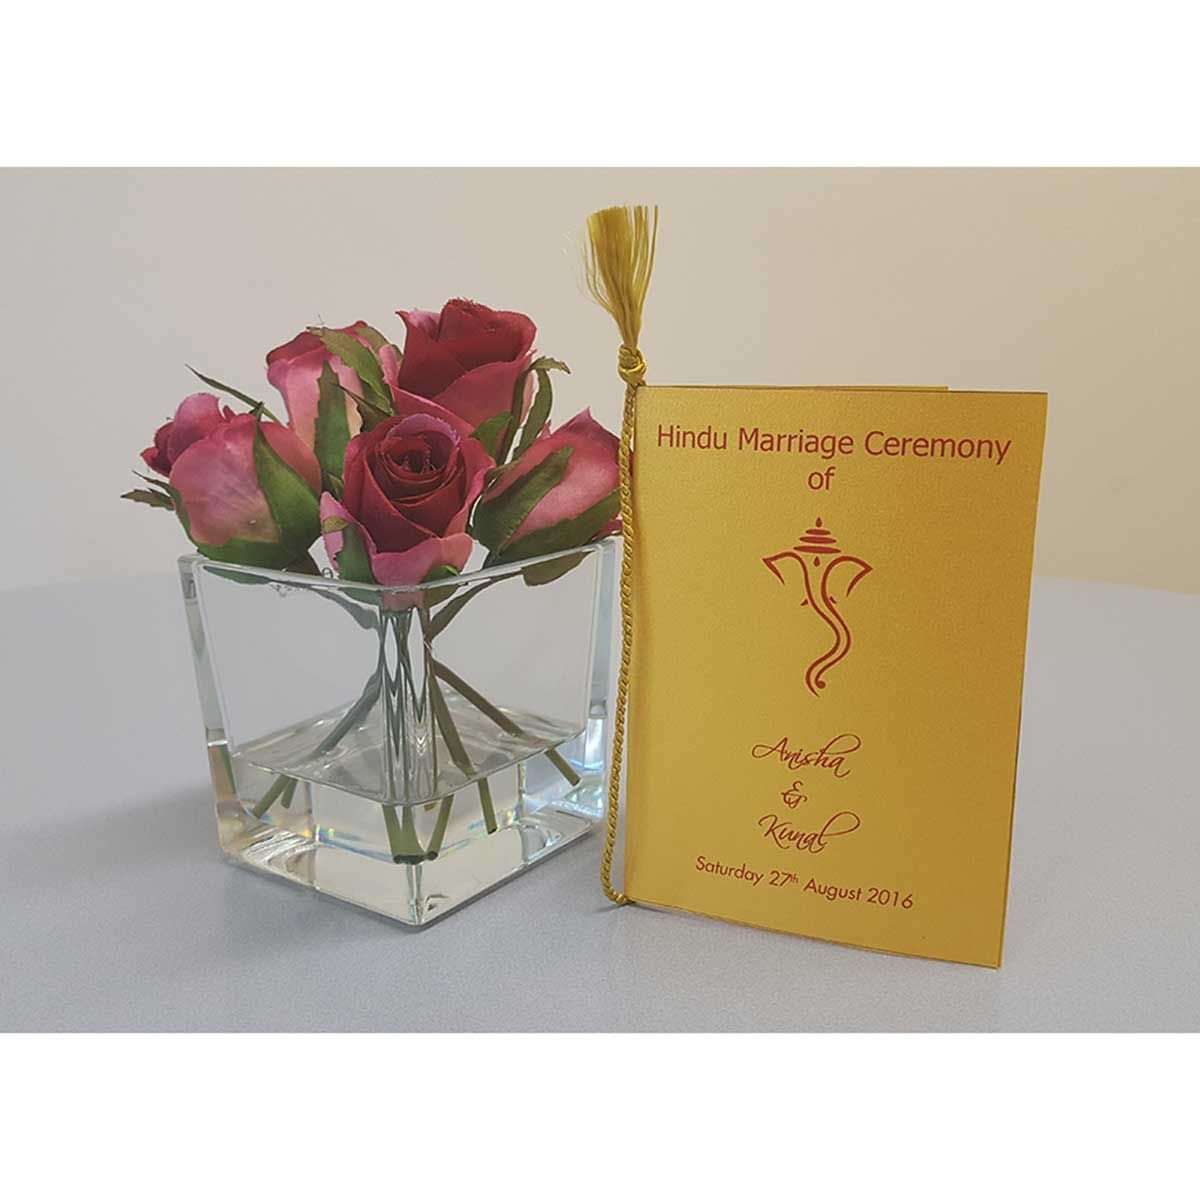 Kankotri - Wedding Invitation Cards Leicester | Wedding Ceremony Program Booklet : Hindu Ceremony Programme Booklet 1  Get in touch to discuss your requirements: Email: enquiries@kankotri.co.uk Phone: 0116 373 7279